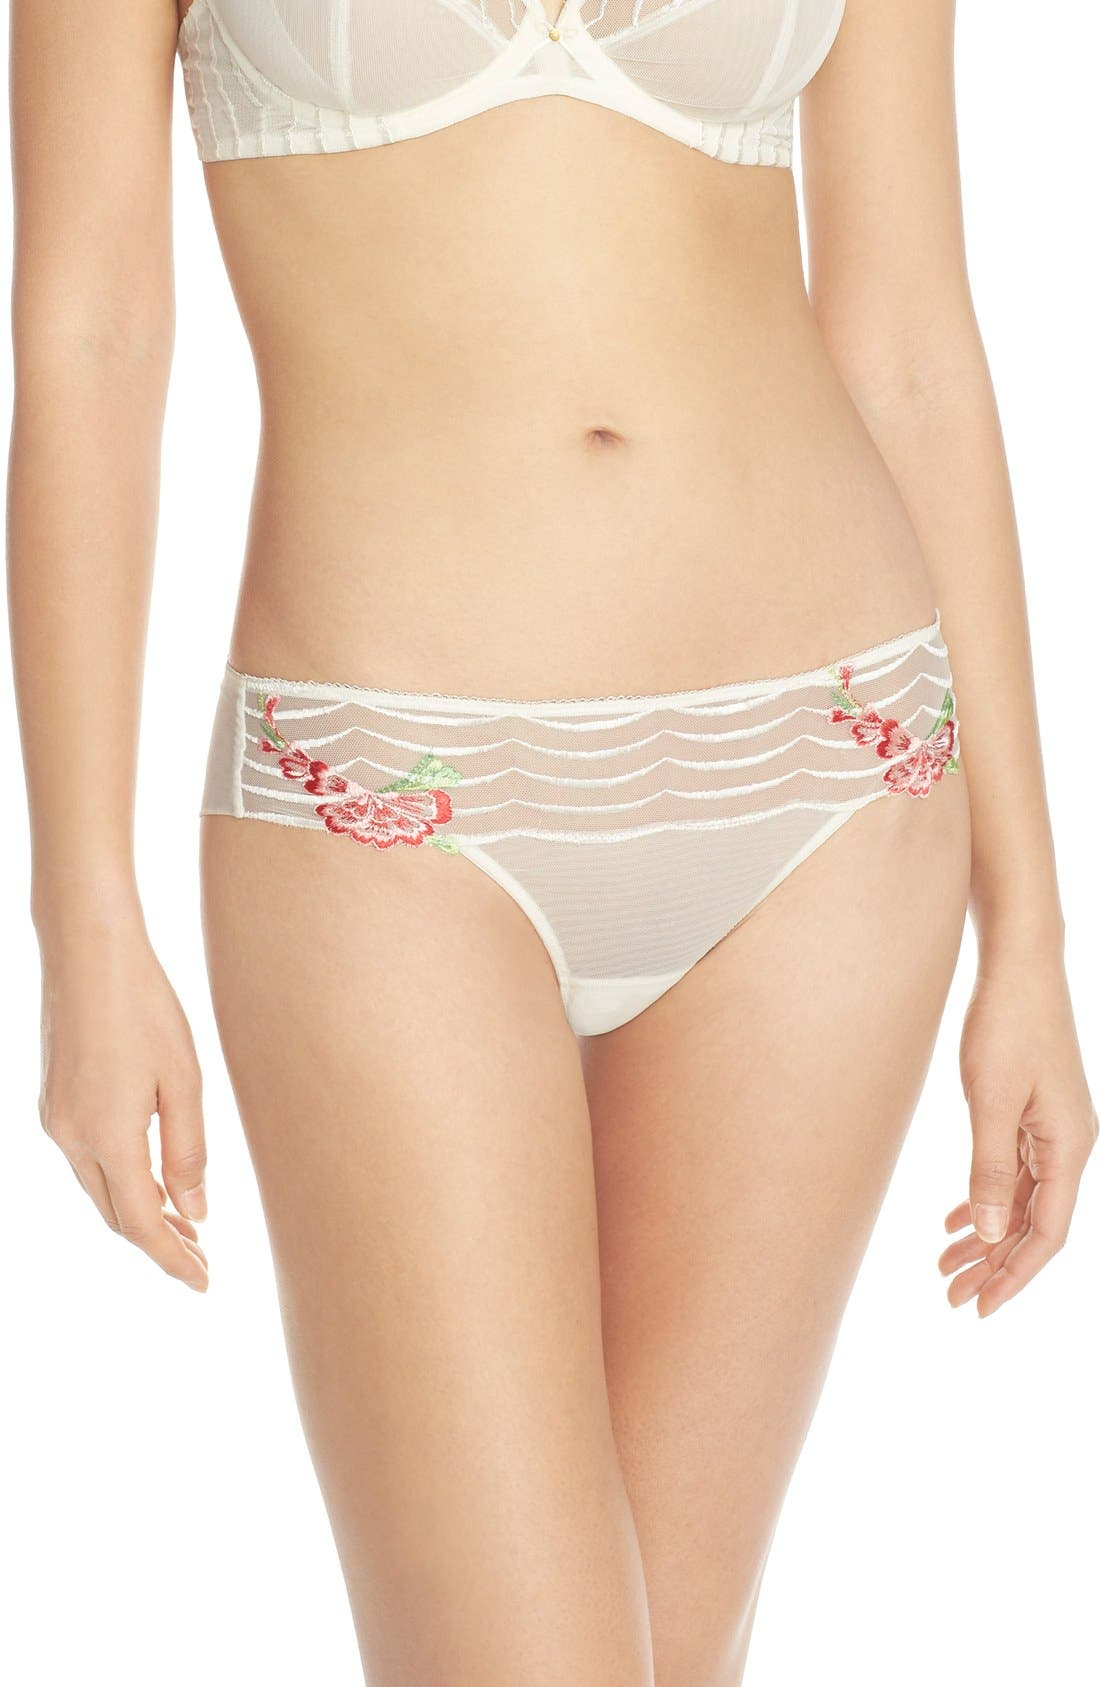 Alternate Image 1 Selected - Wacoal 'Intuition' Embroidered Tanga